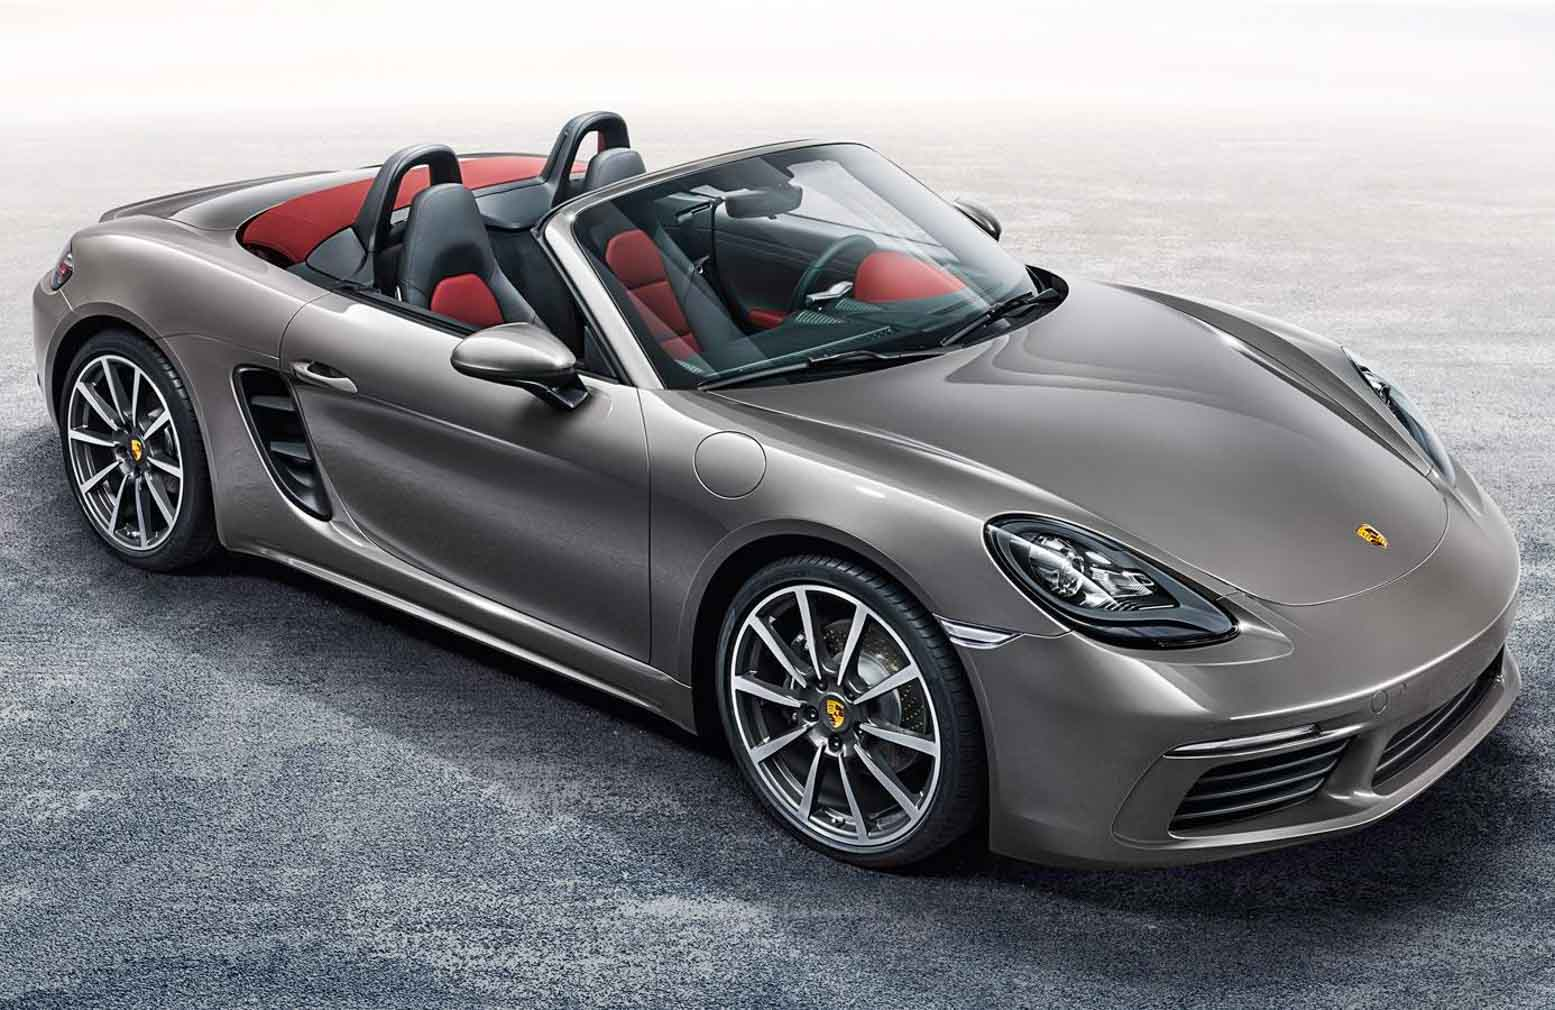 Top 5 Two-Door Sports Cars Under Rs 1 Crore In The Indian Market